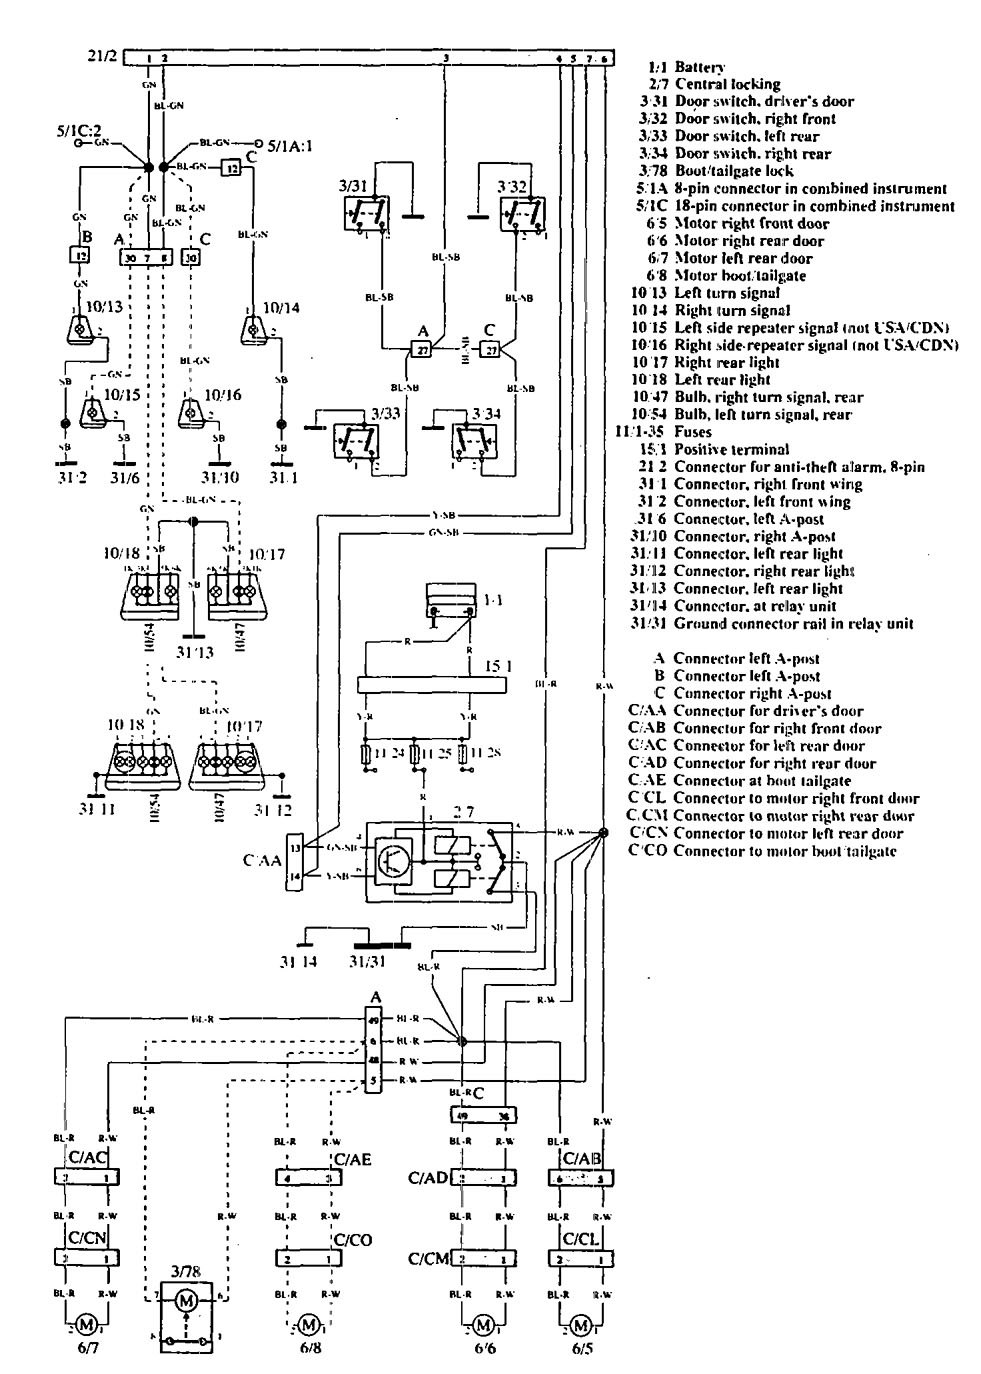 volvo 960 wiring diagram securoty anti theft 1 1992 1992 volvo 960 wiring diagram 1992 wiring diagrams collection  at gsmx.co